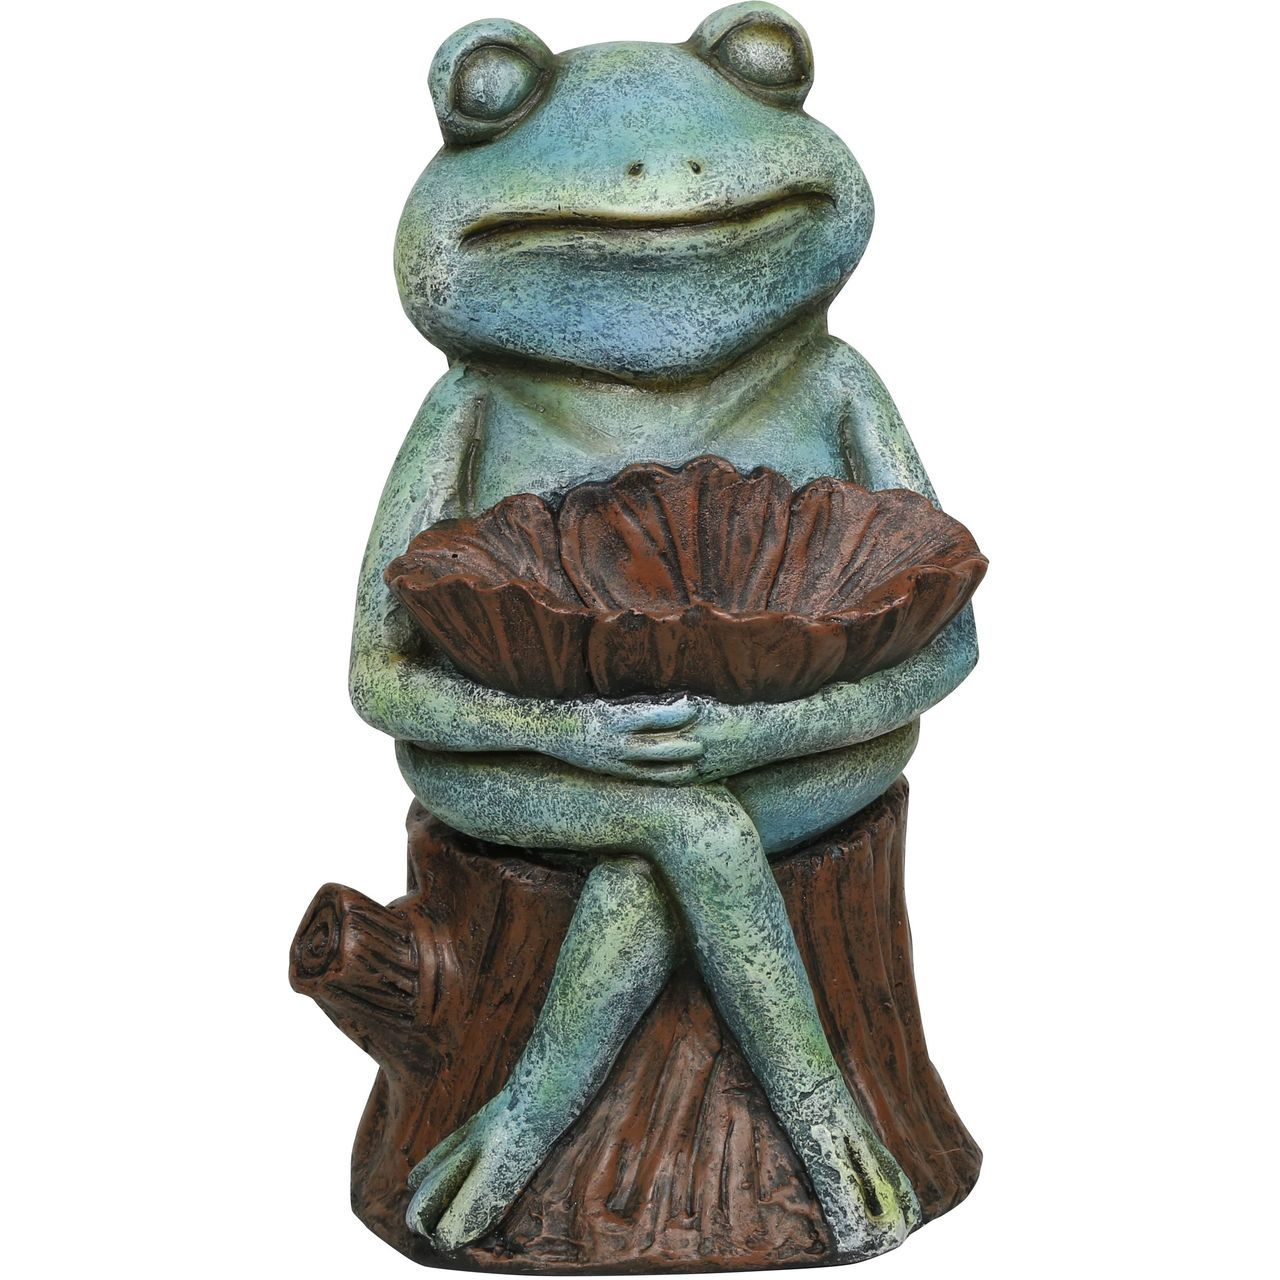 Alpine ZEN714 Sitting Turquoise-Colored Frog Garden Statue with Flower